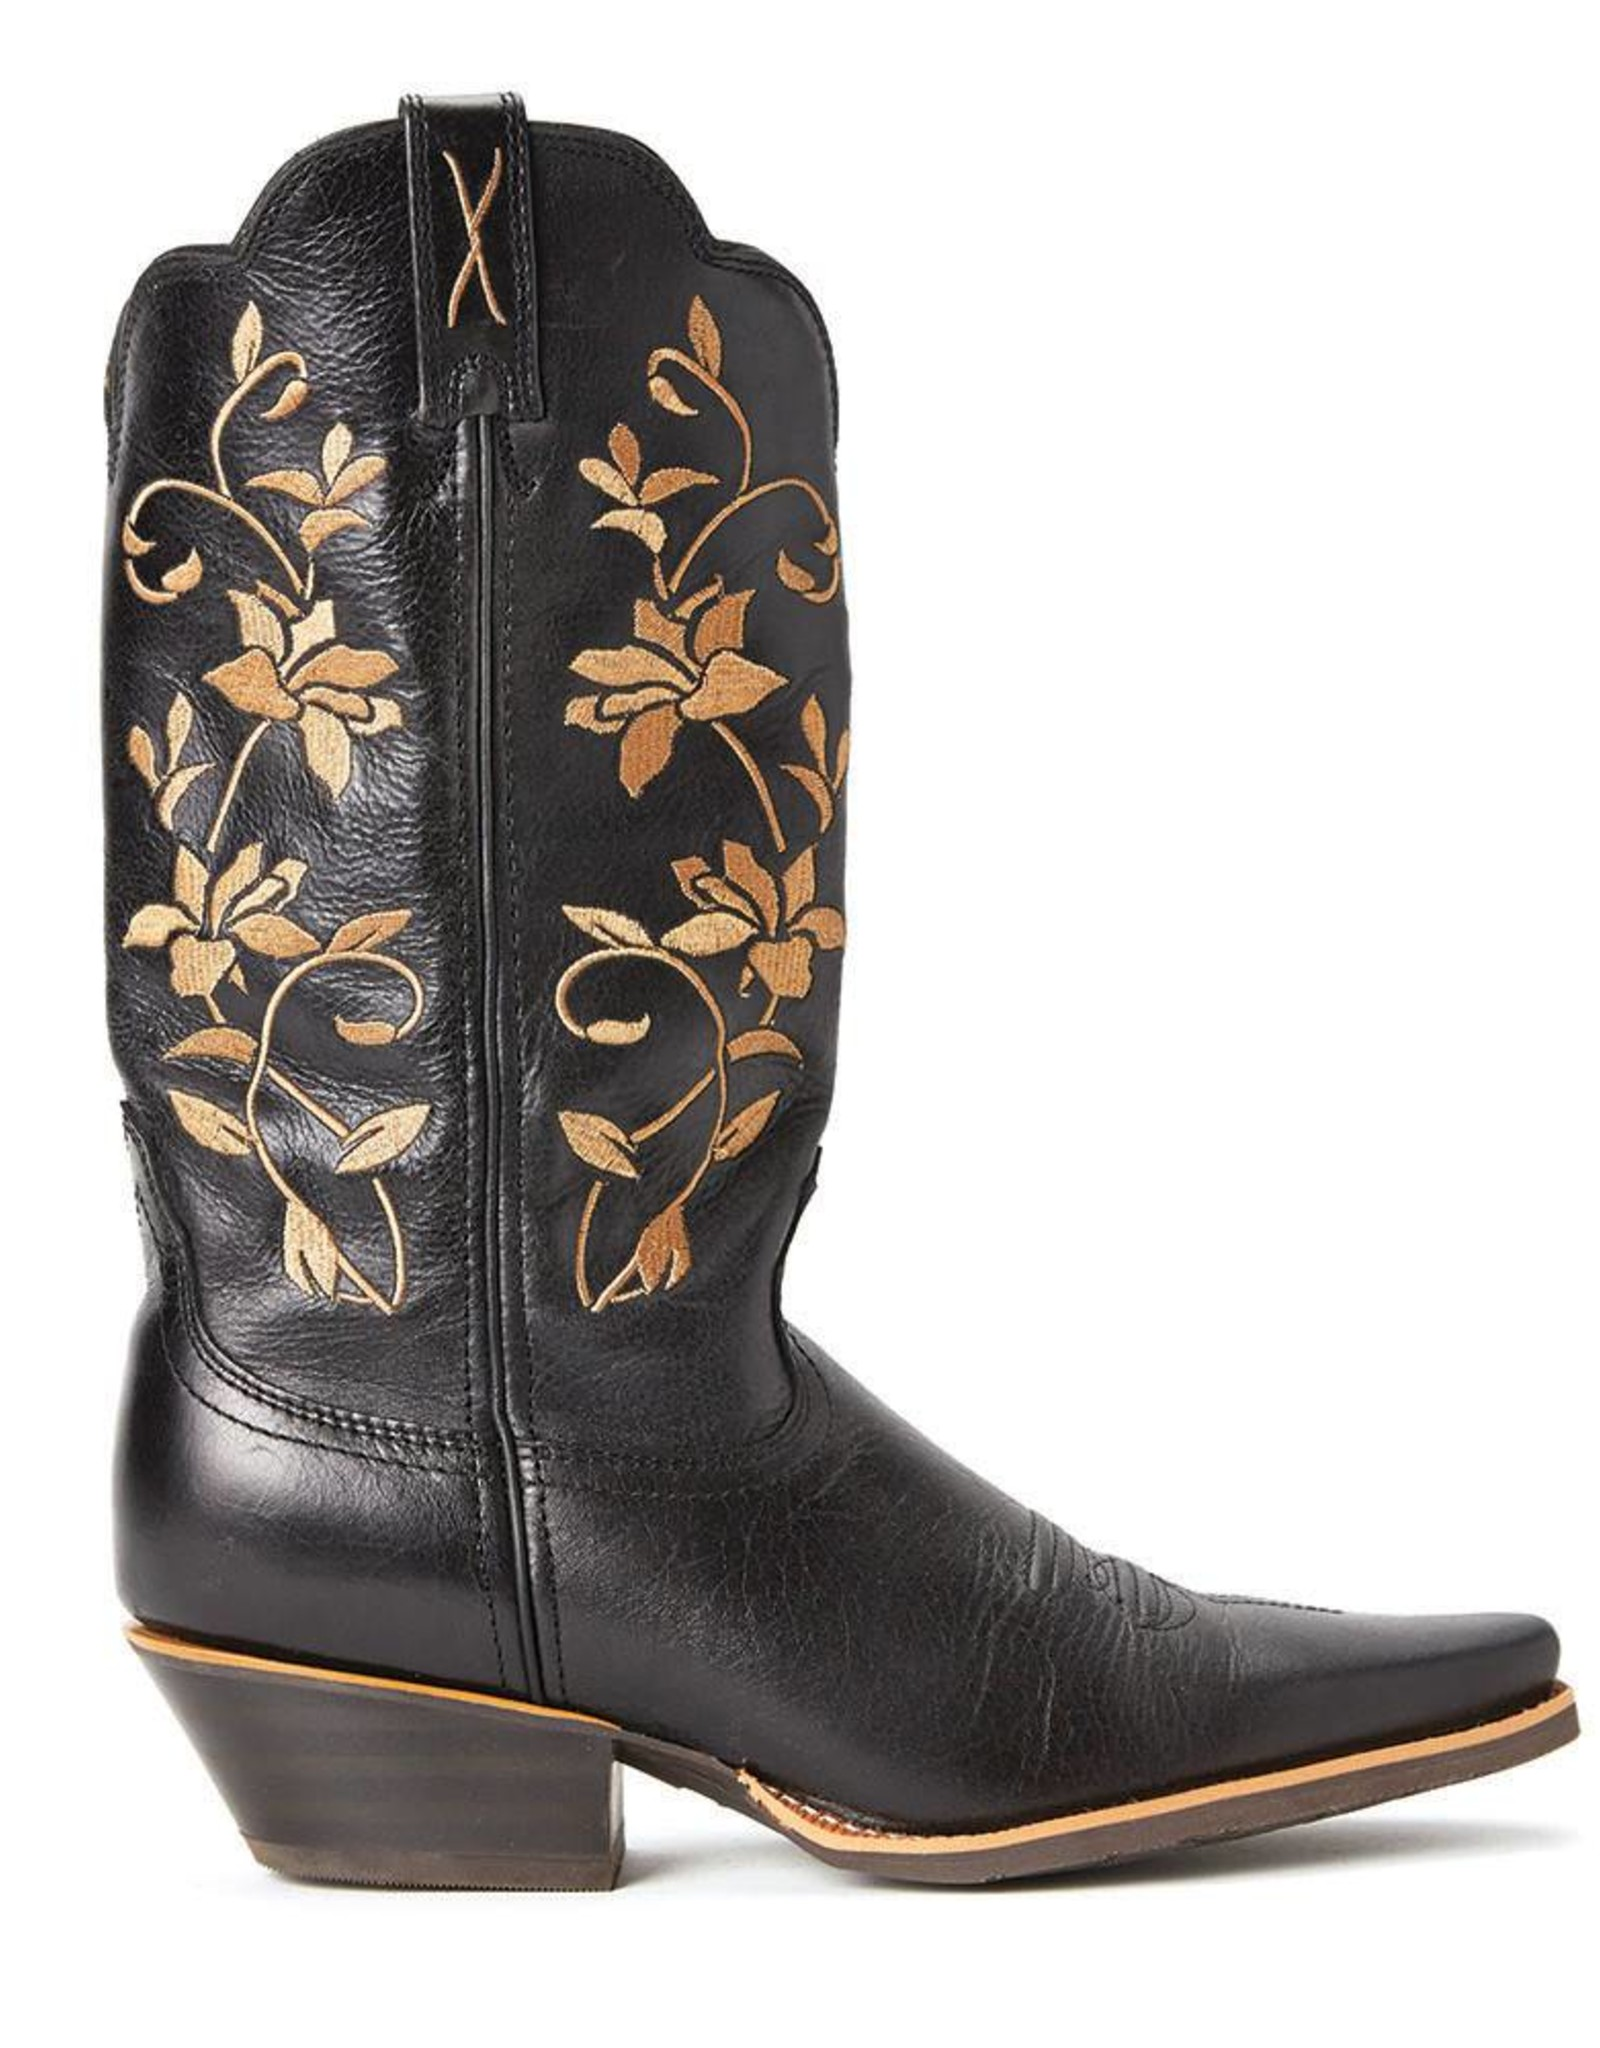 Twisted X Twisted X Women's Western Boots Black Size 9